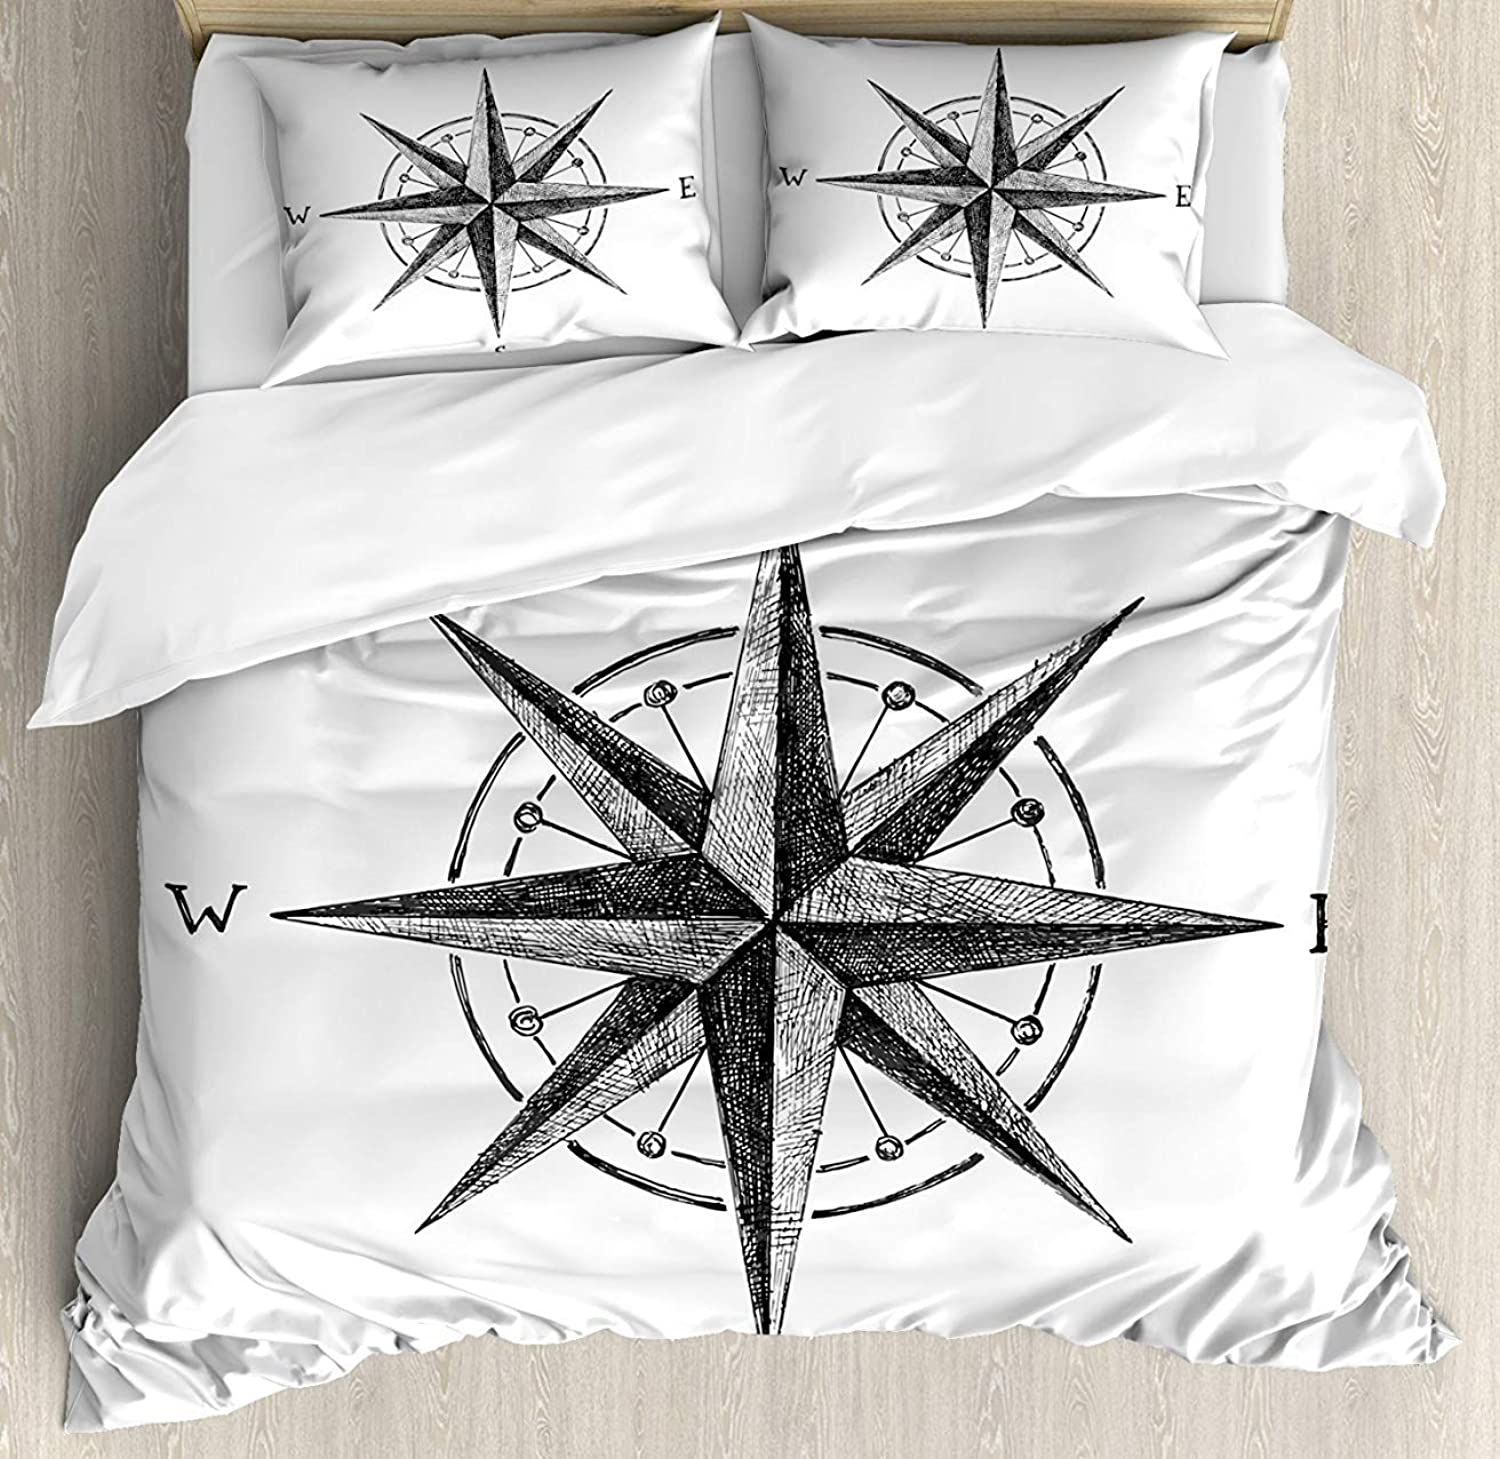 Compass 4pcs Bed Set Seamanship Hand Drawn Windpink with Complete Directions North South West Bedding Sets Duvet Cover Flat Sheet No Comforter with Decorative Pillow Shams for Kids Adults Teens